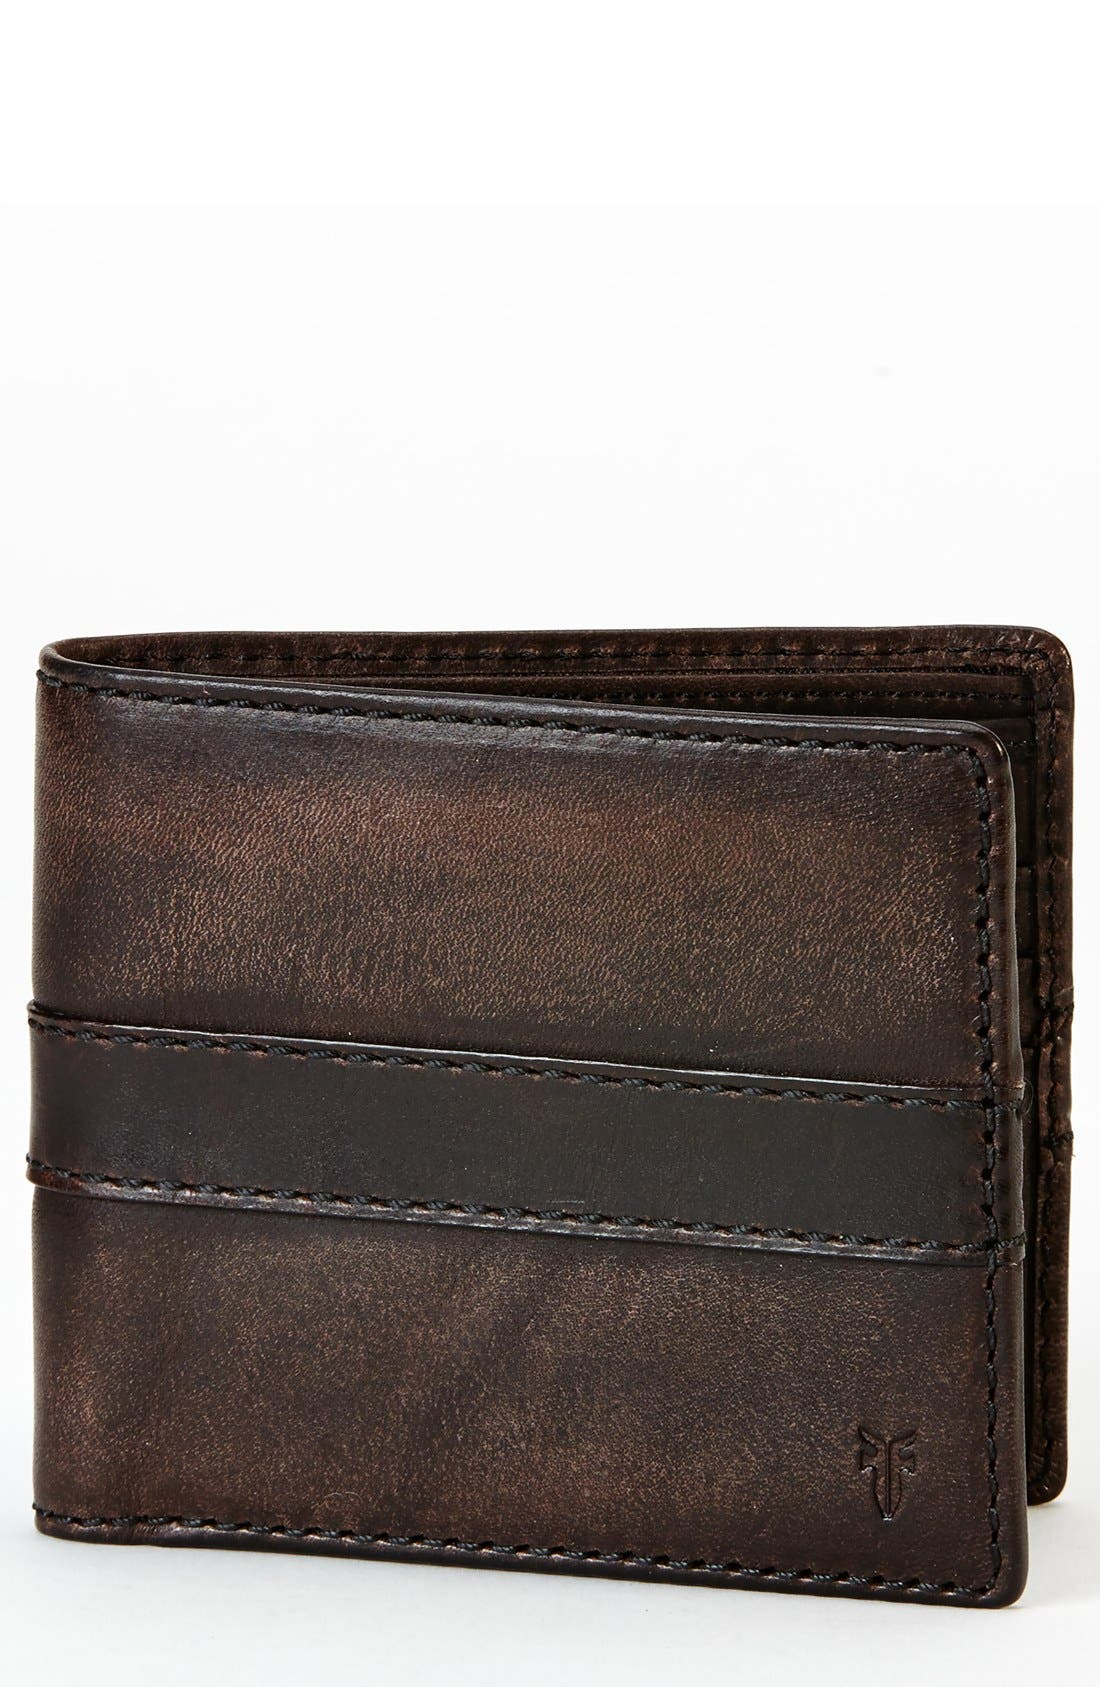 'Oliver' Leather Billfold Wallet,                         Main,                         color, Dark Brown